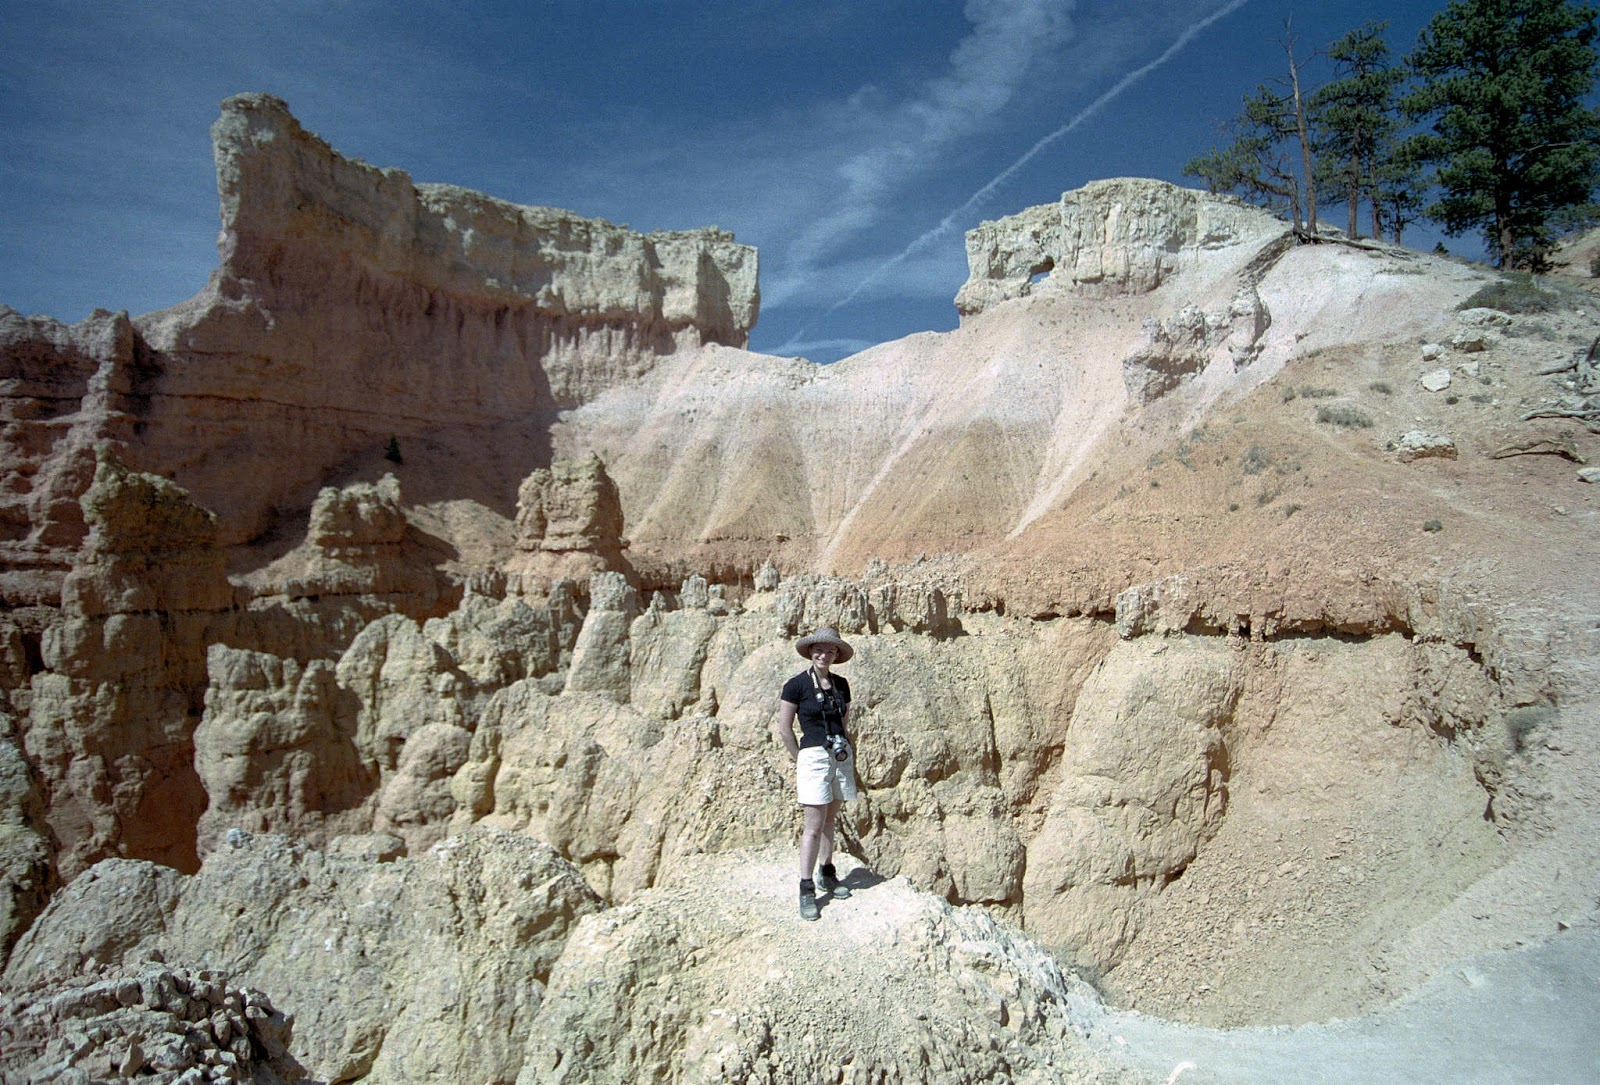 Kas at Bryce Canyon